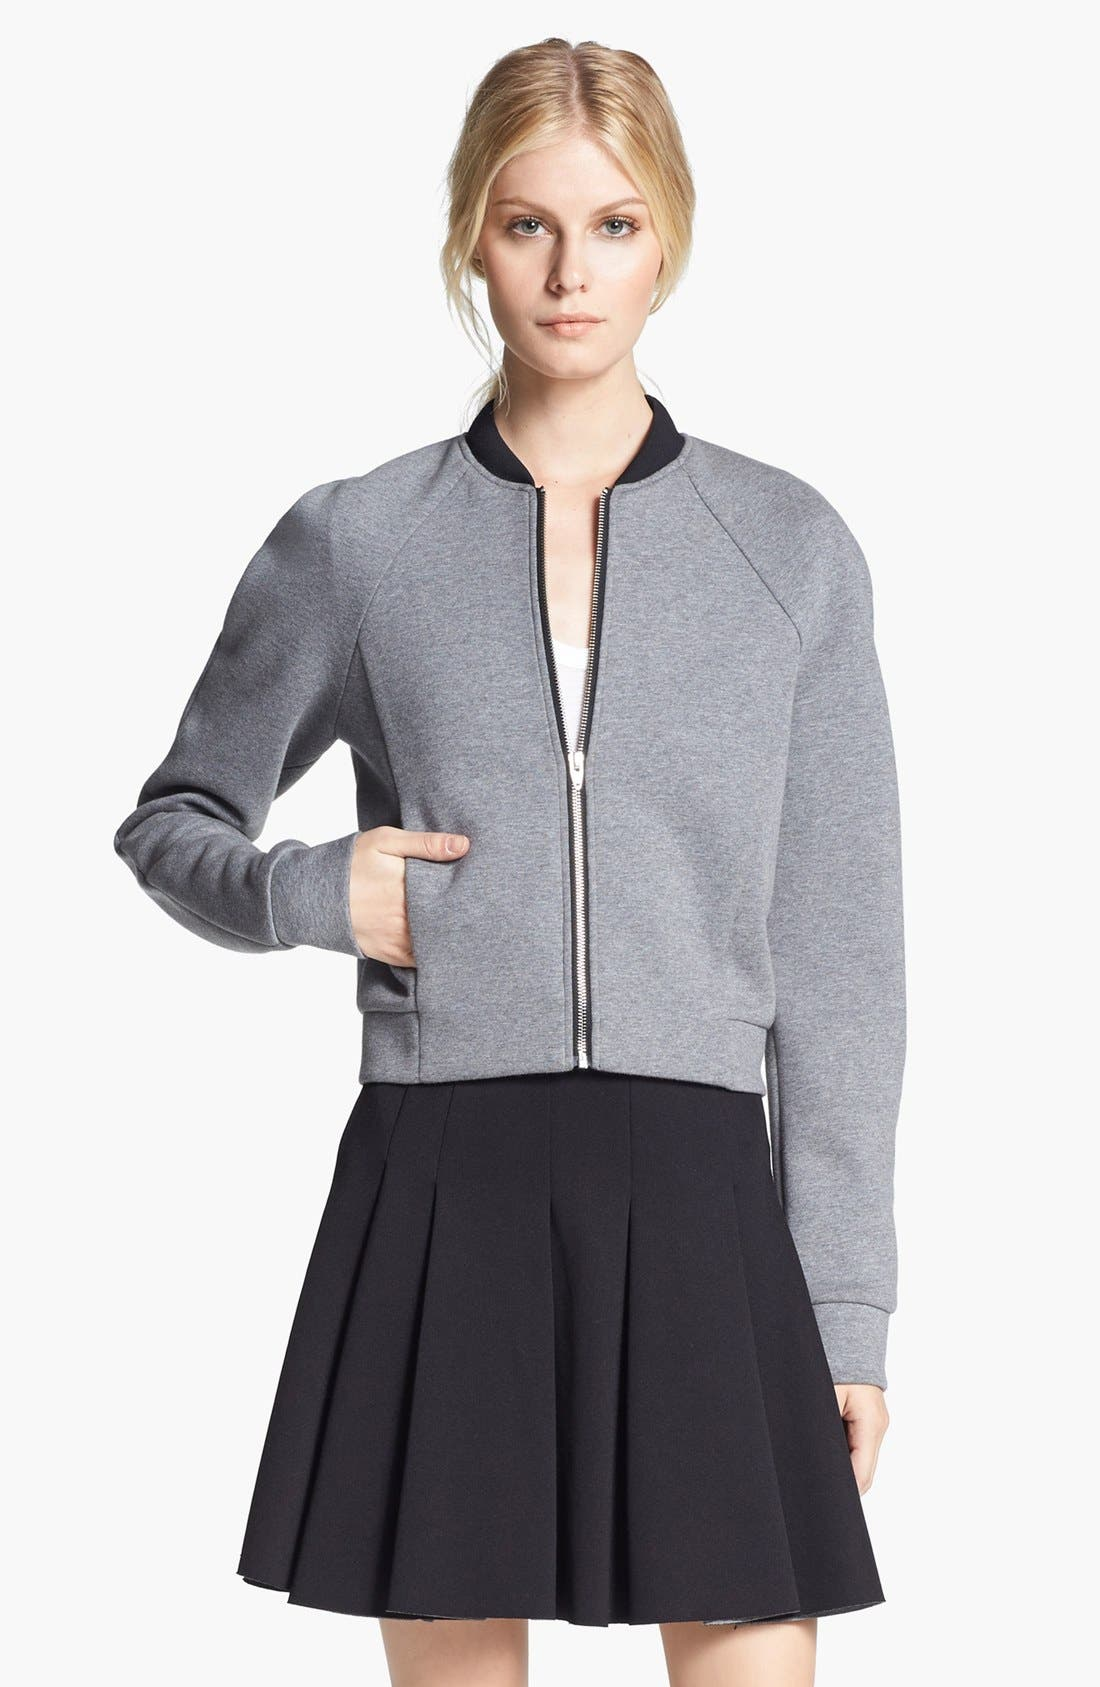 Main Image - T by Alexander Wang Bonded Jersey & Neoprene Bomber Jacket